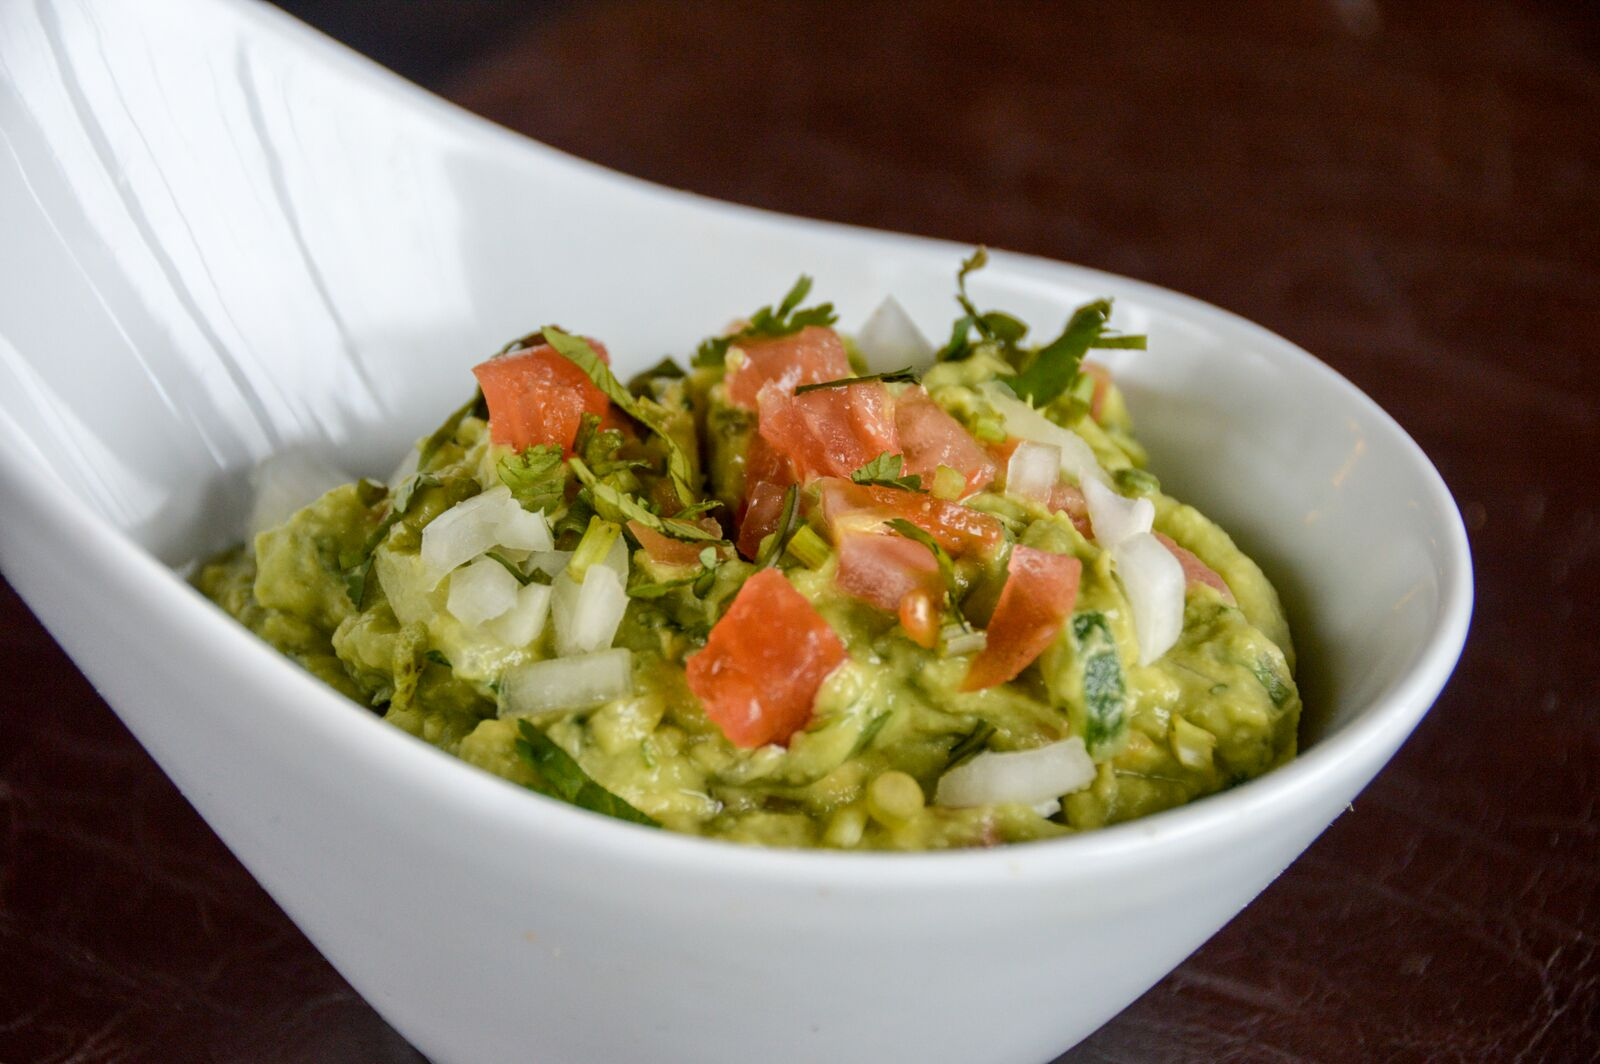 bowl of guacamole with tomatoes and onions